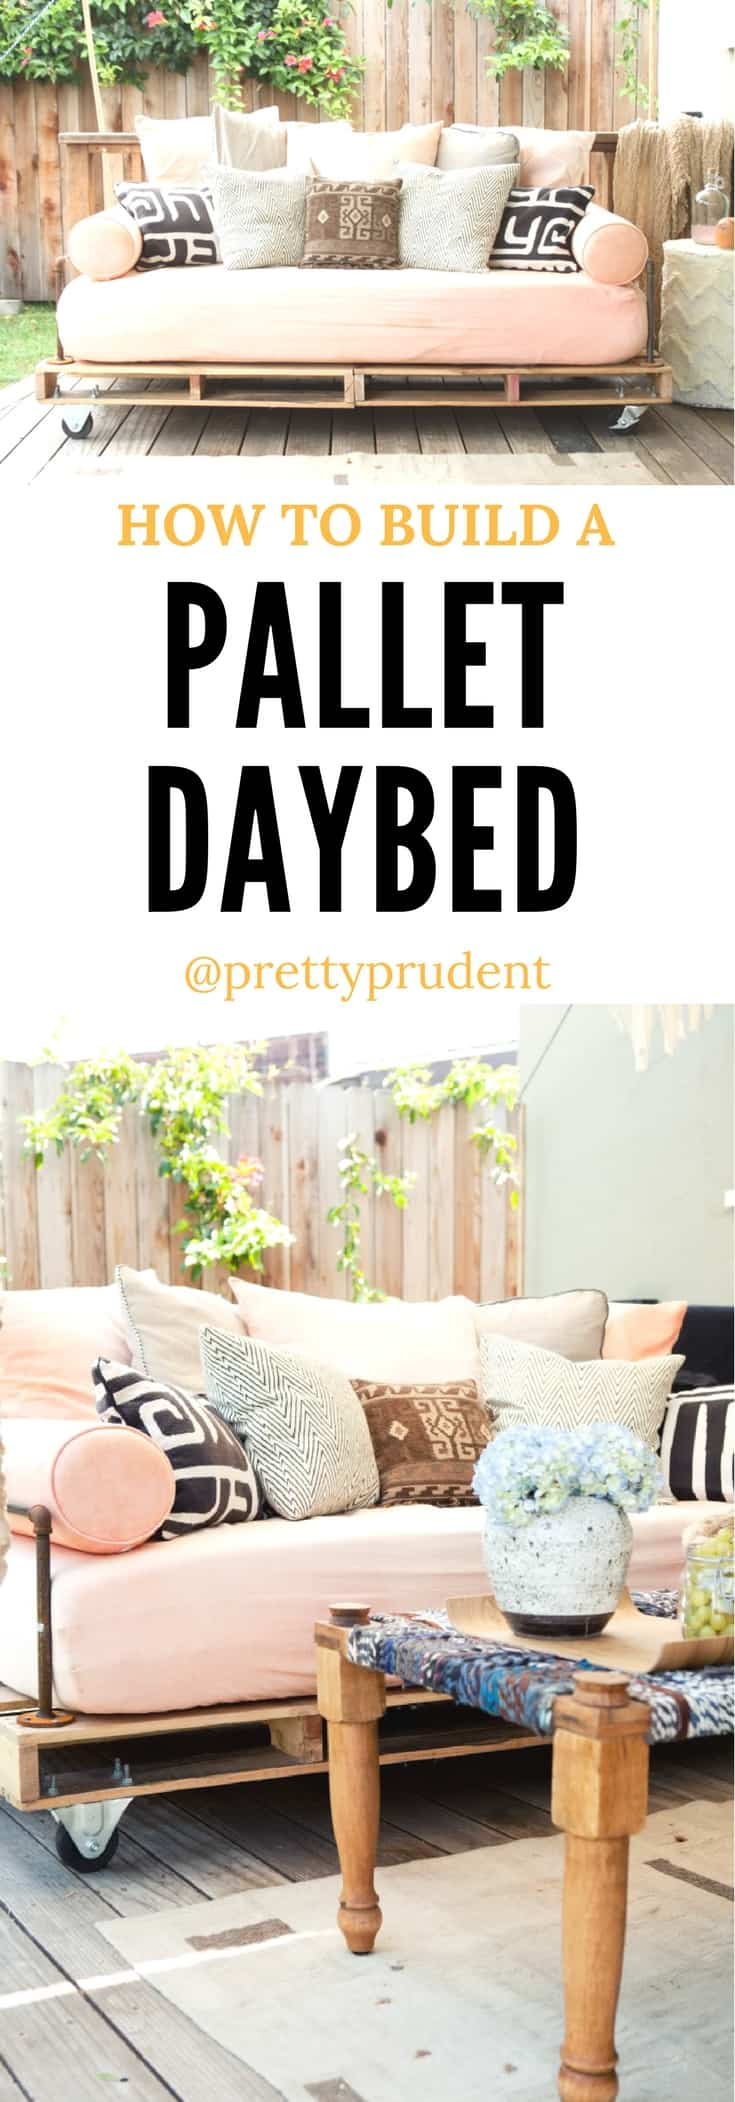 How to build a DIY Pallet Daybed - step by step instructions for a beautiful, comfortable homemade daybed made from Pallets. A rewarding DIY Pallet project.